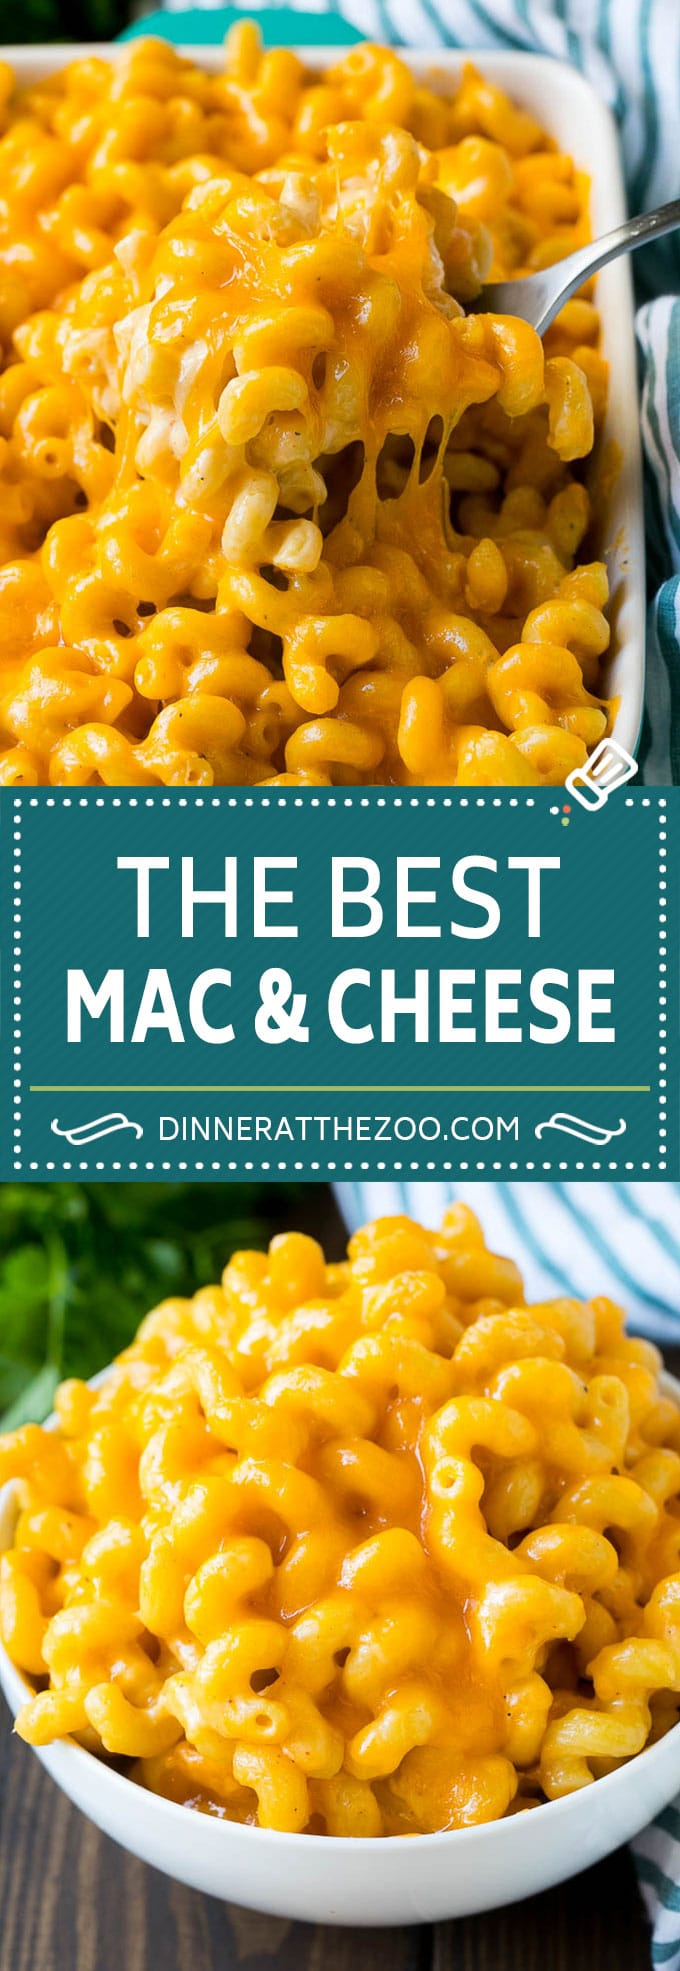 This baked mac and cheese is a blend of tender noodles in a rich and creamy cheese sauce.